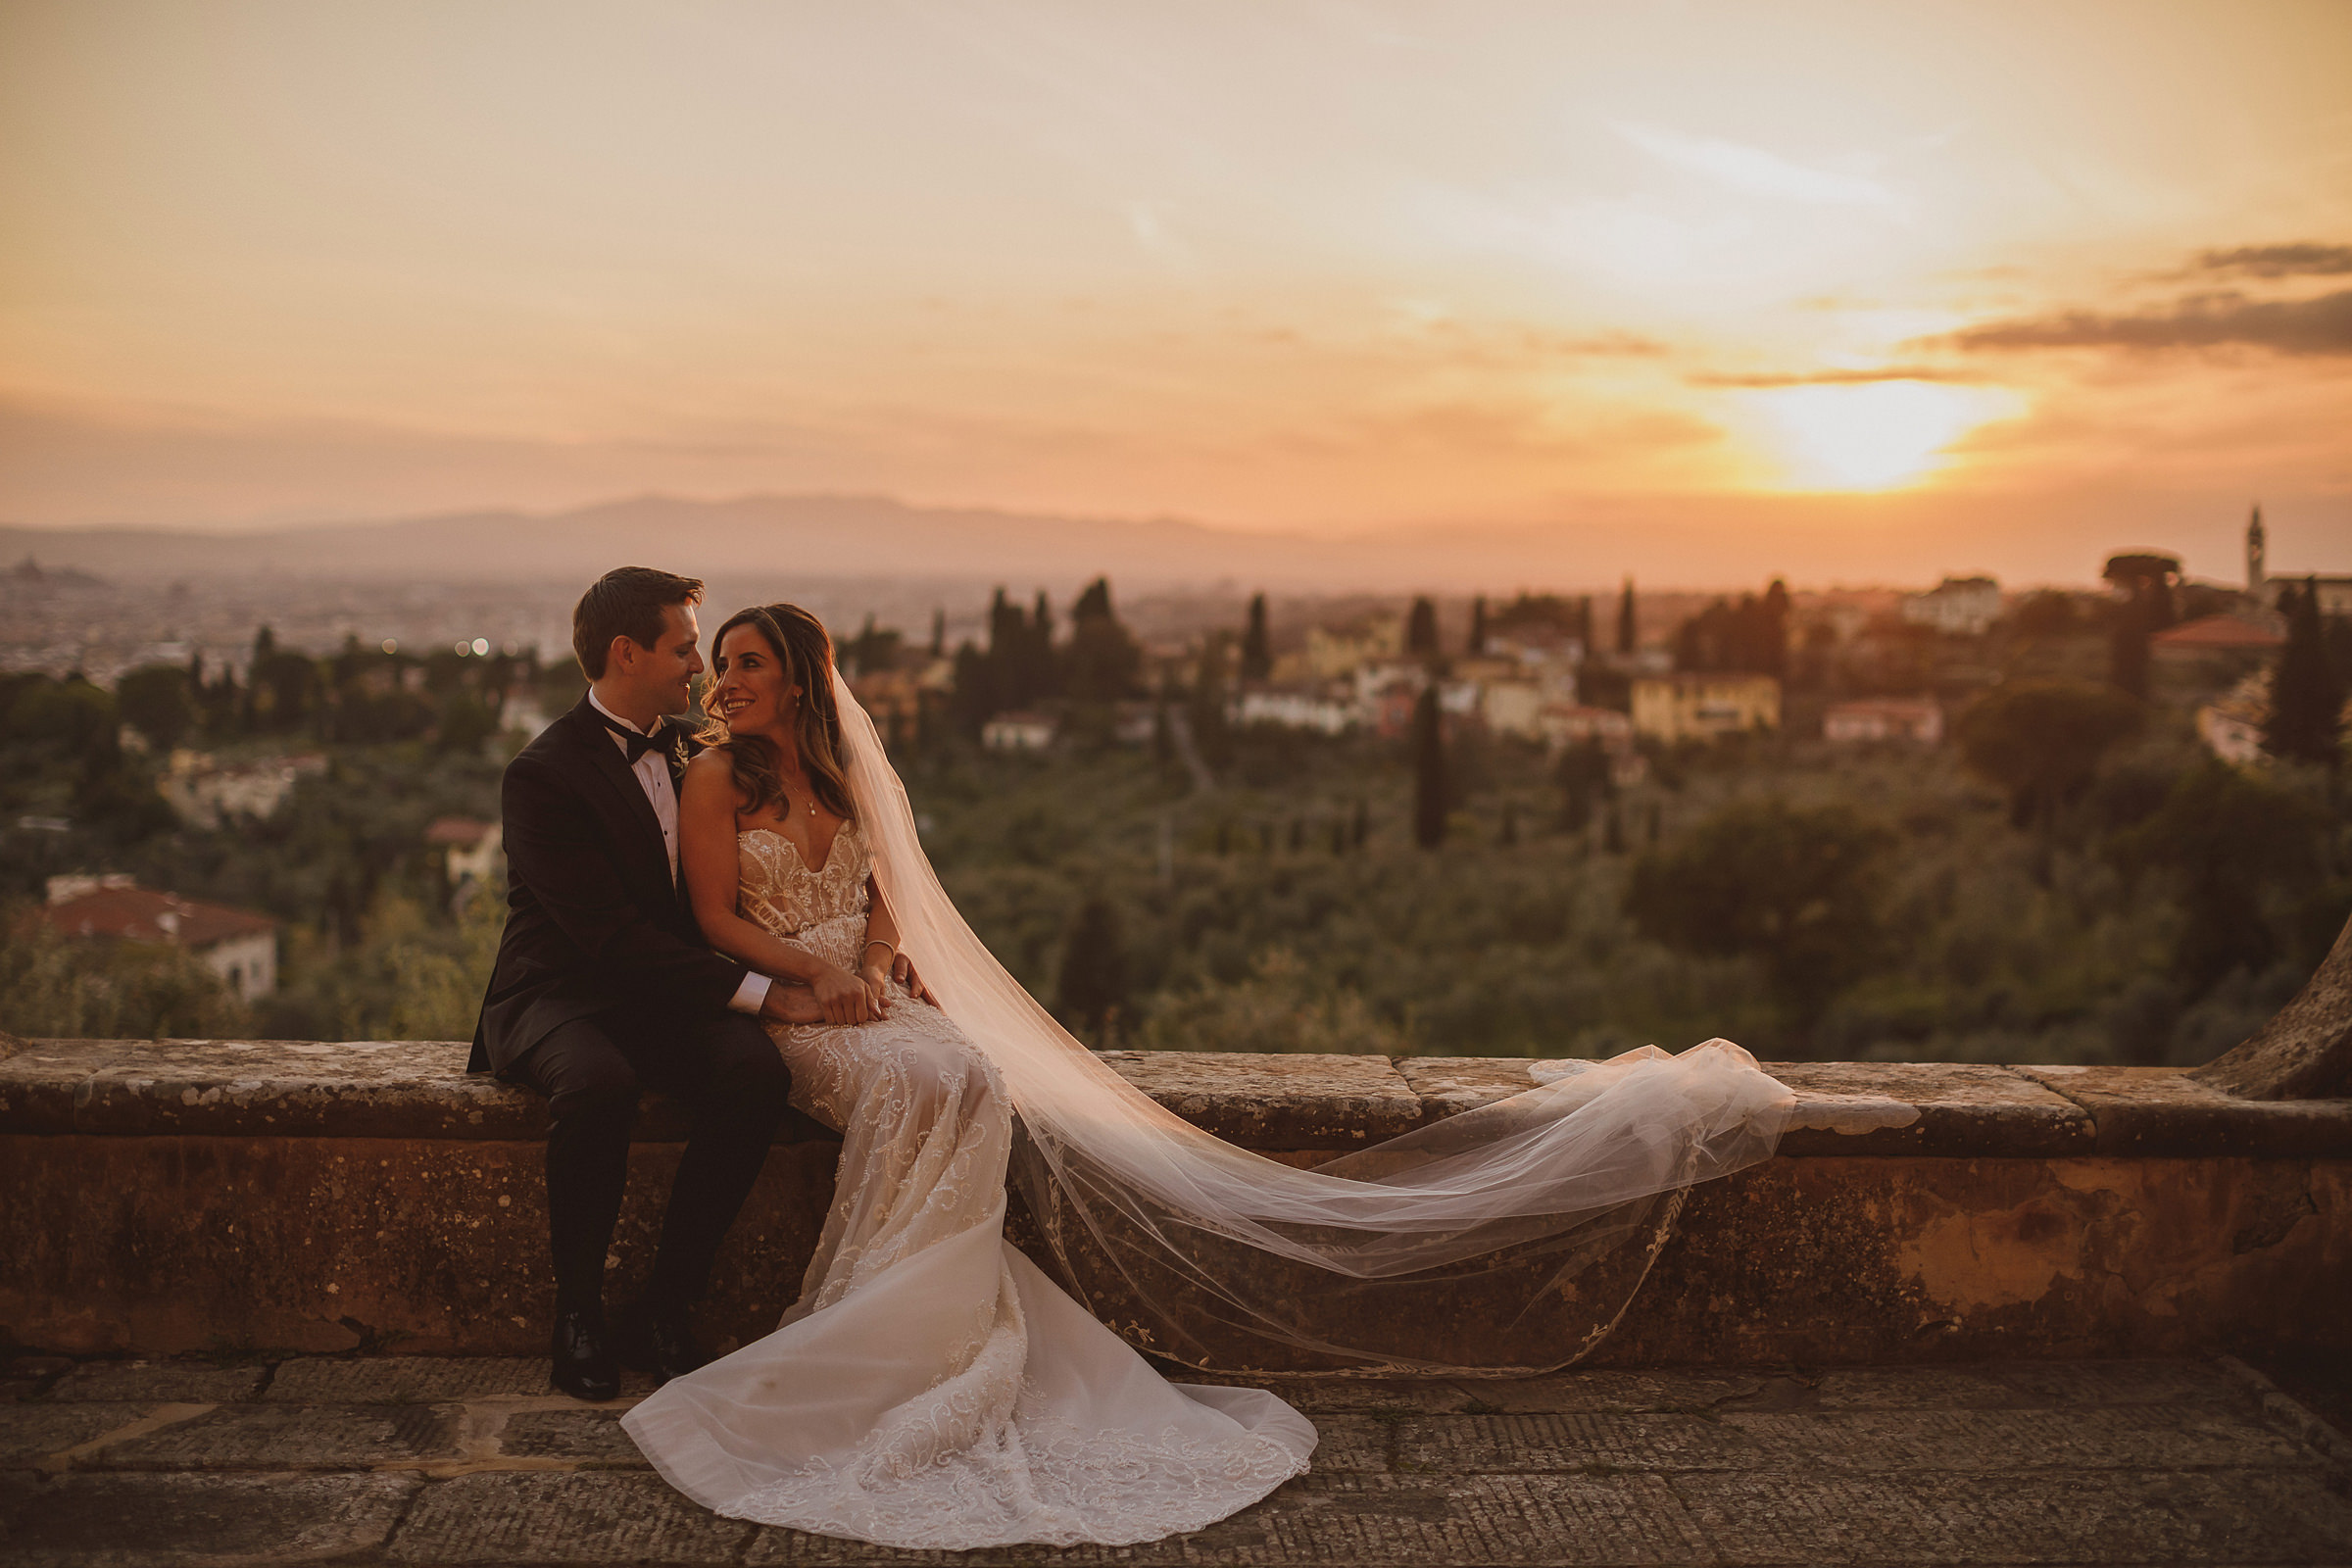 Outdoor seated couple portrait against country skyline - photo by Ed Peers Photography